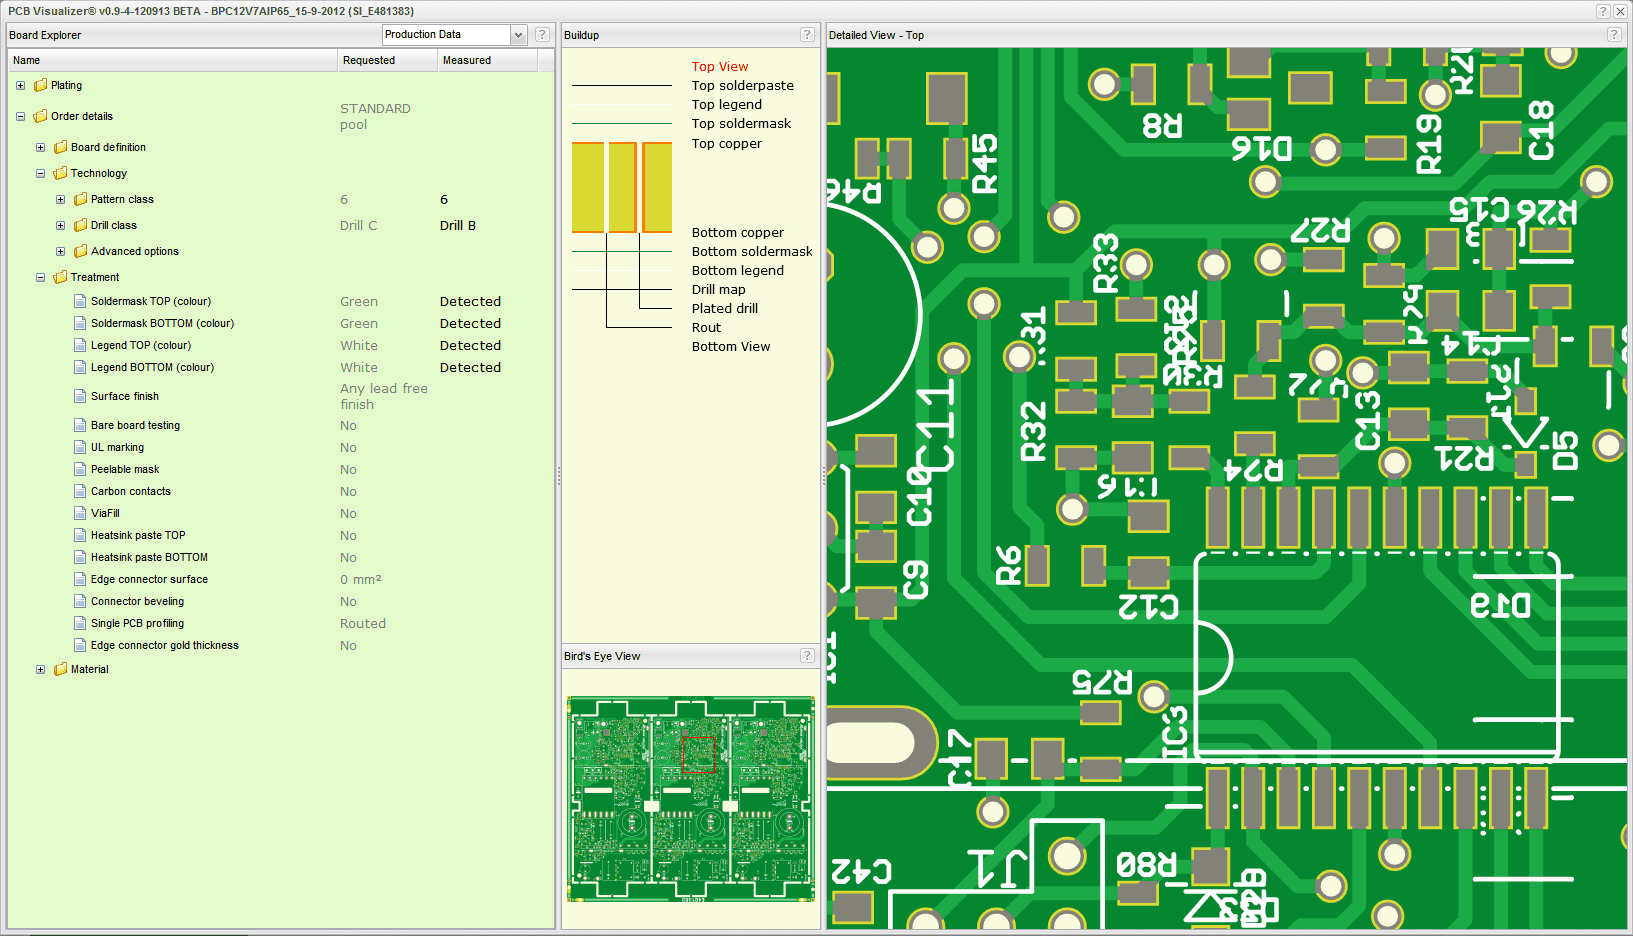 PCB-Visualizer-Production data-Top